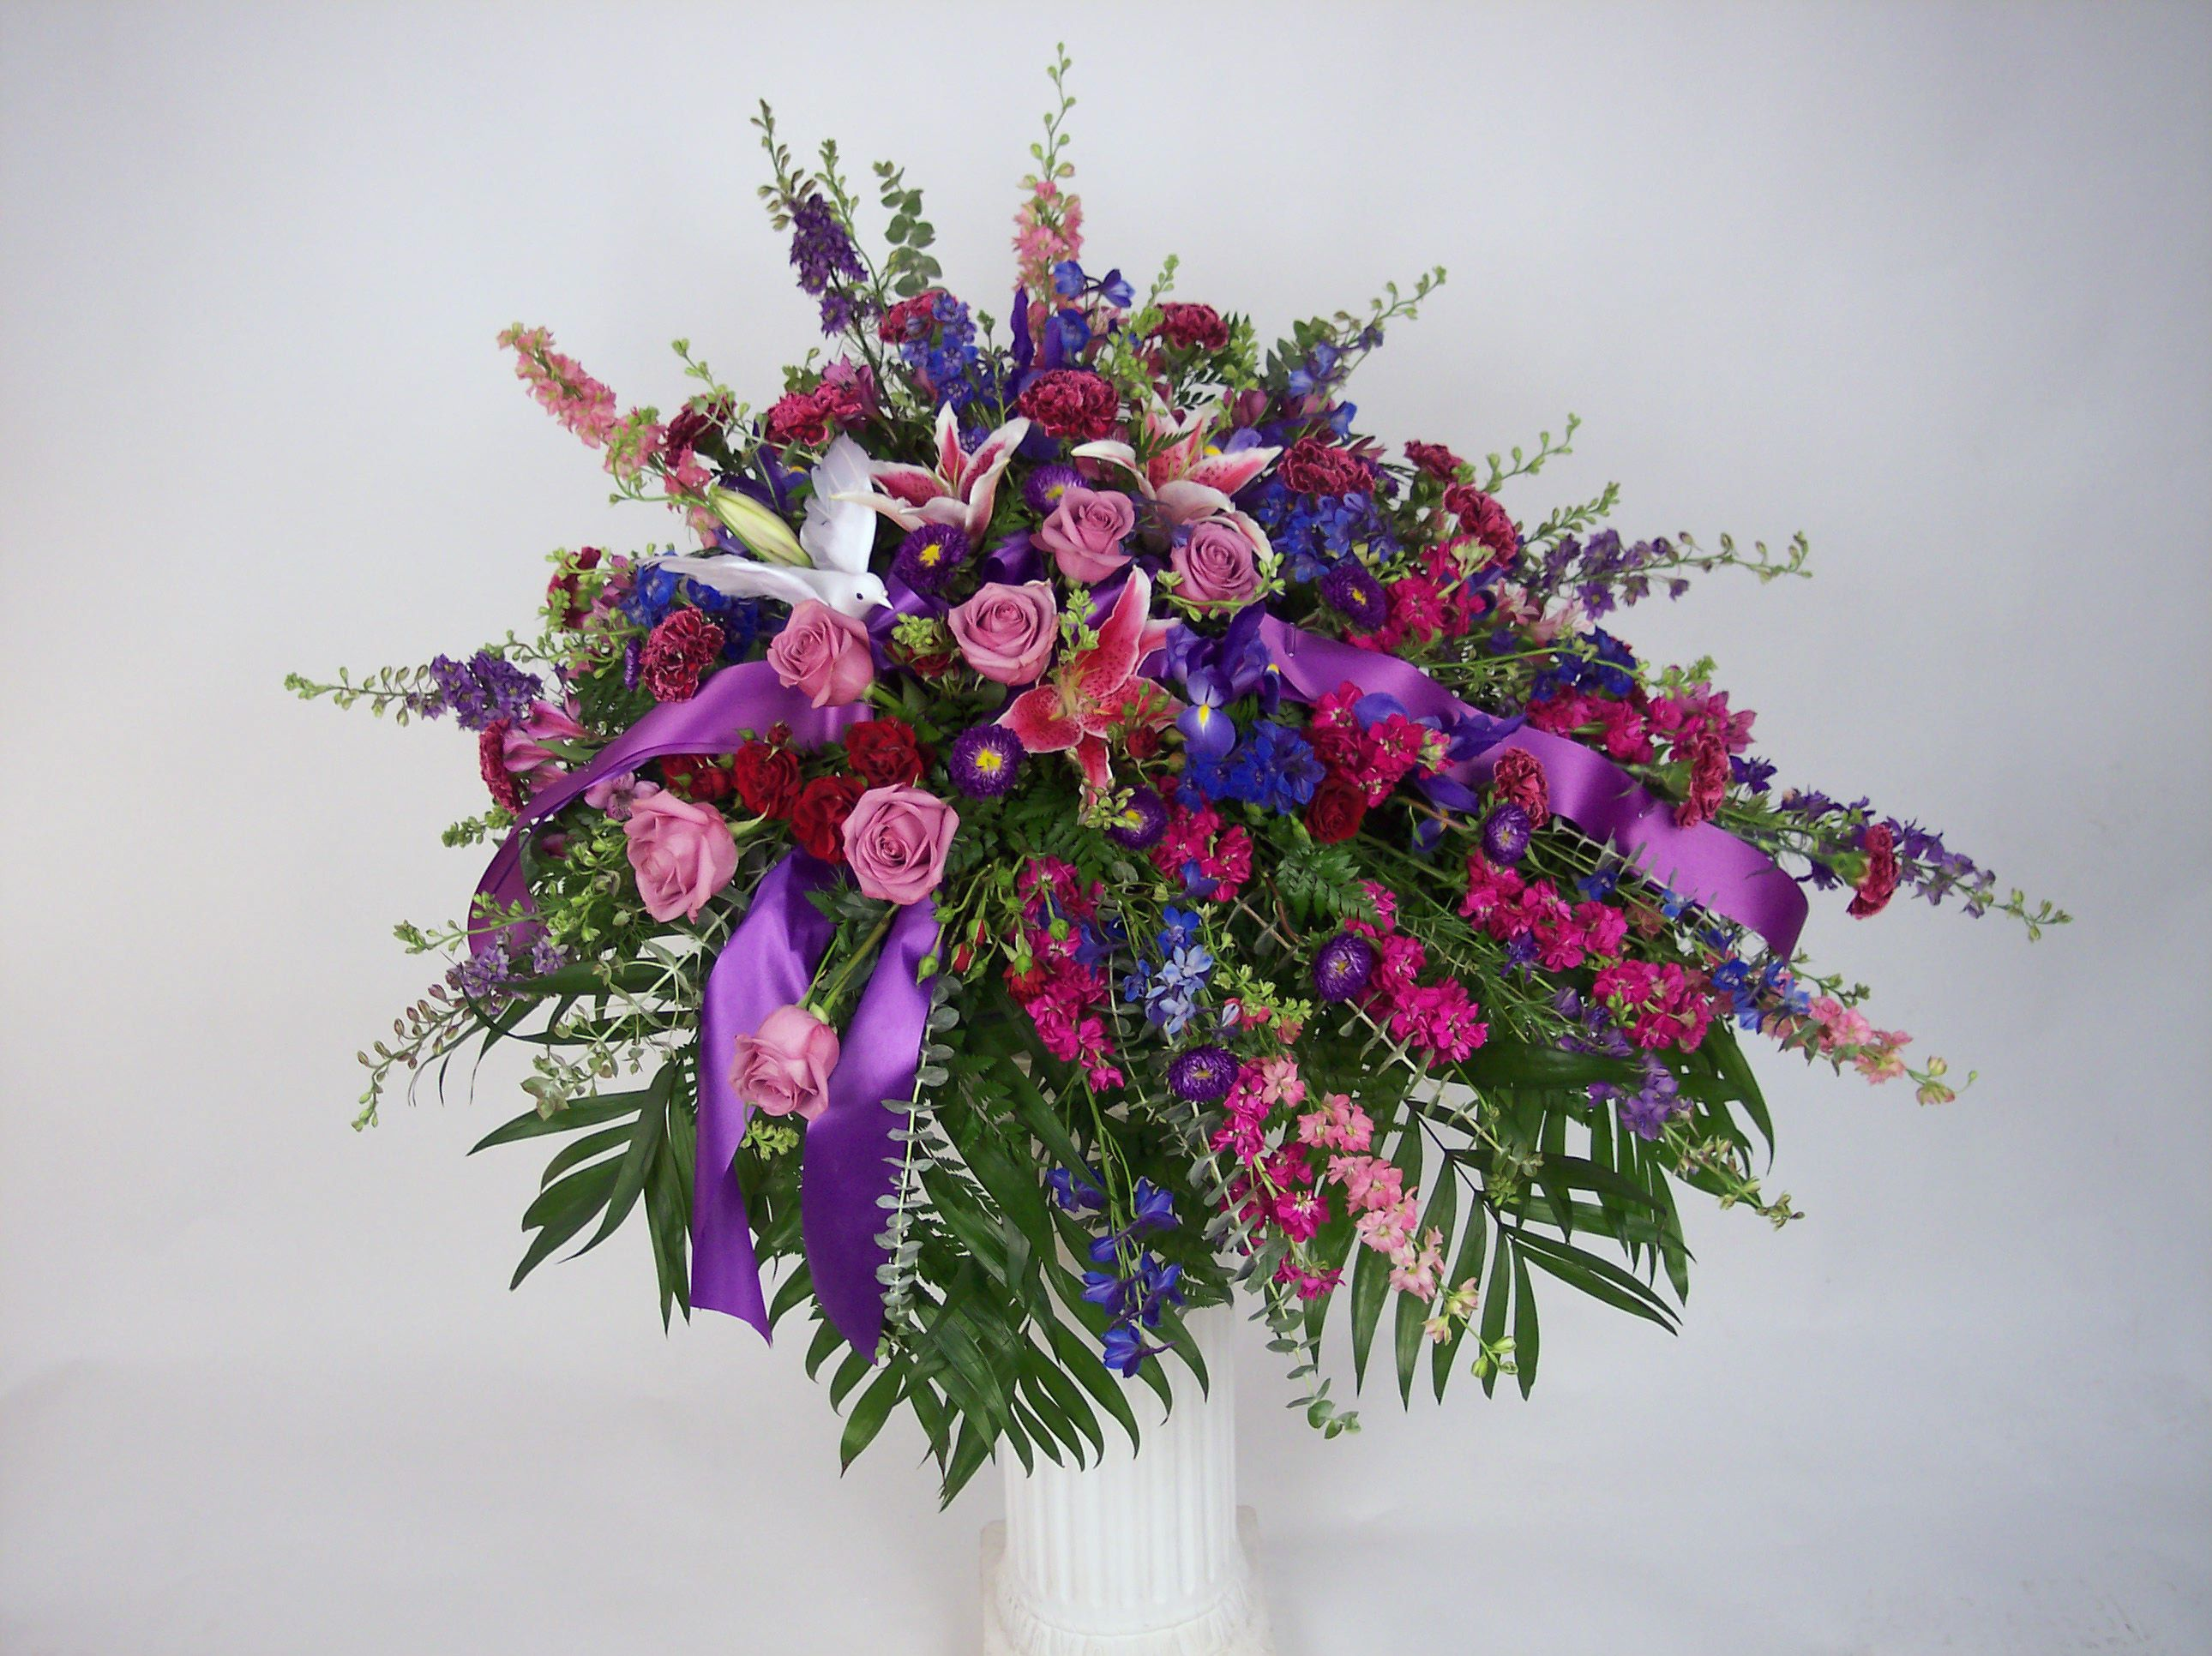 Remembrance gillespie florists indianapolis in casket spray is remembrance gillespie florists indianapolis in casket spray is filled with larkspur delphinium roses stock daisies a small dove and more flowers izmirmasajfo